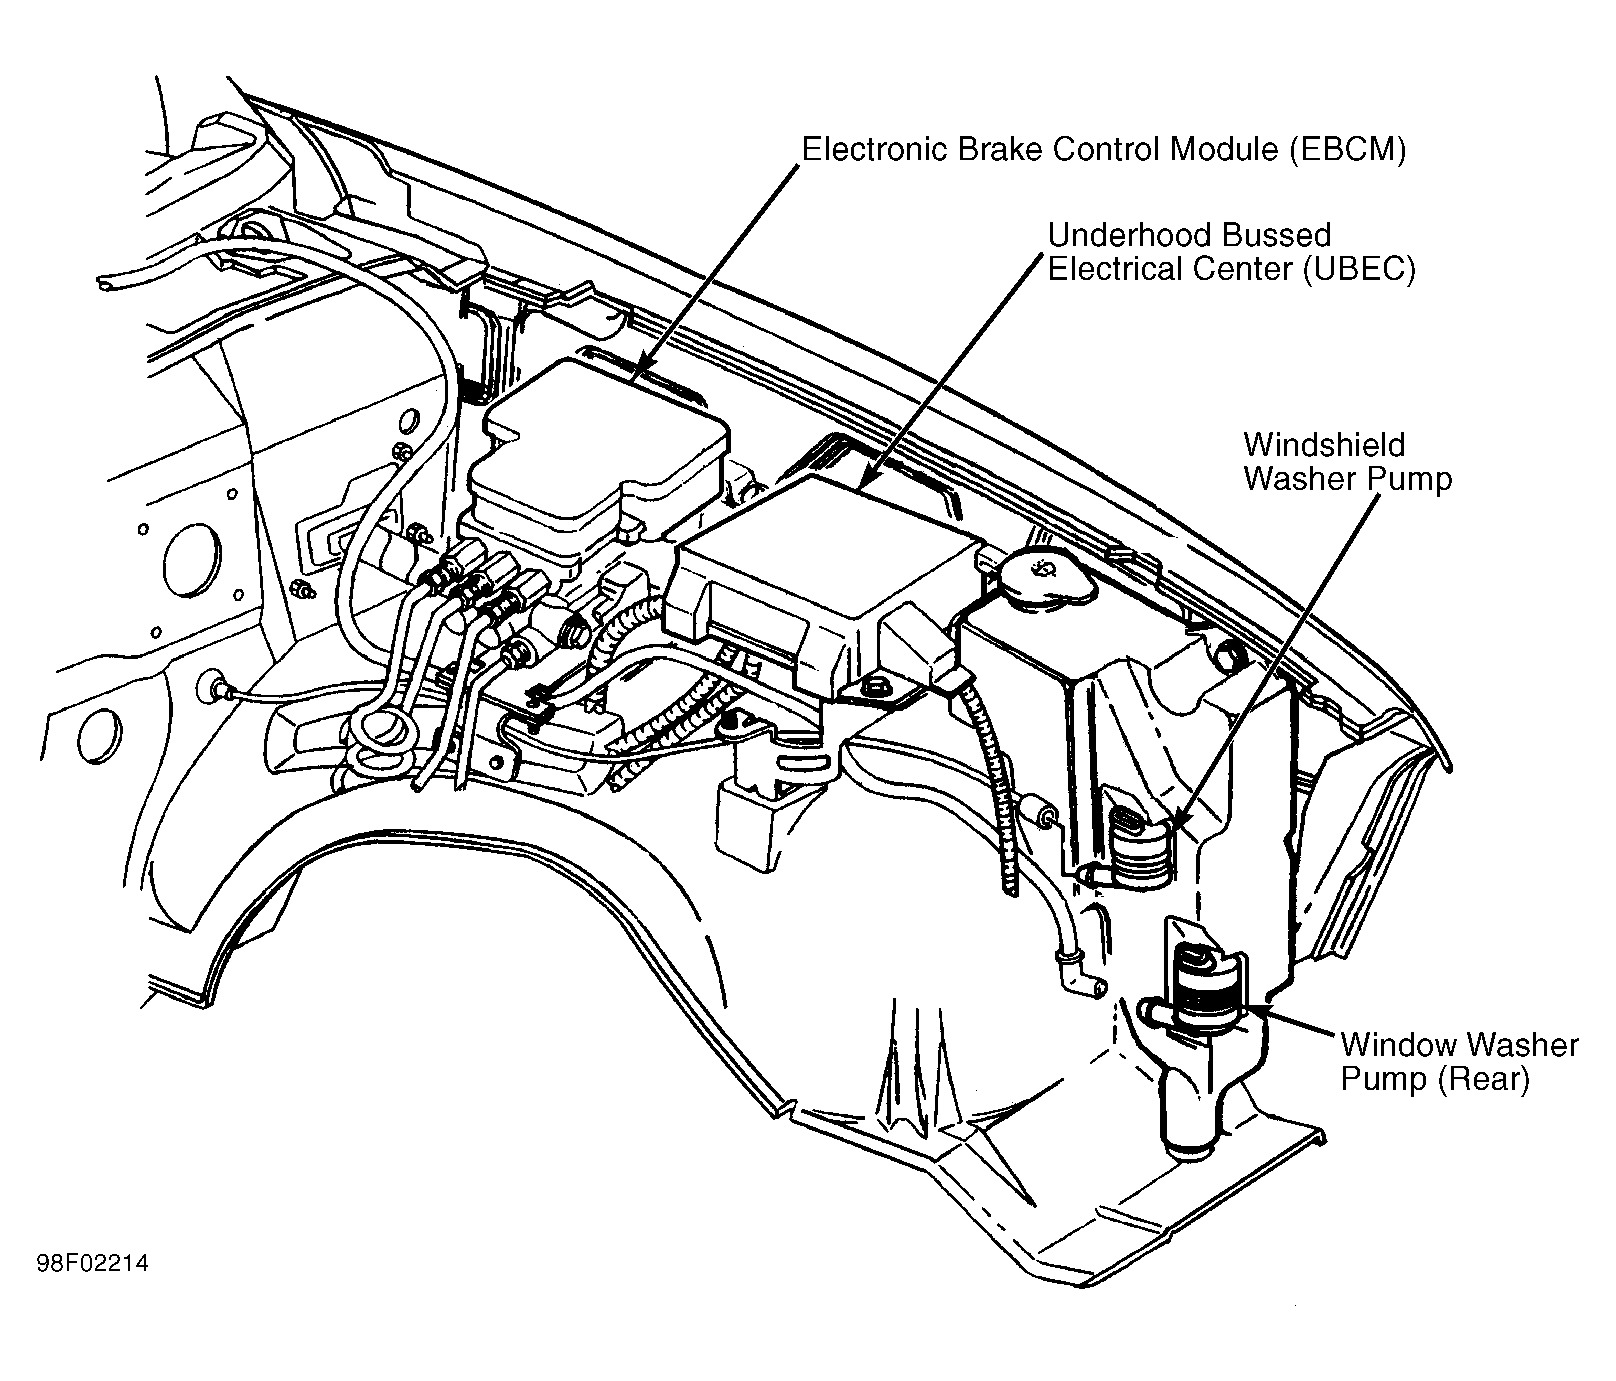 hight resolution of 1995 gmc sonoma fuse automotive wiring diagram u2022 rh nfluencer co 2003 gmc savana fuse box